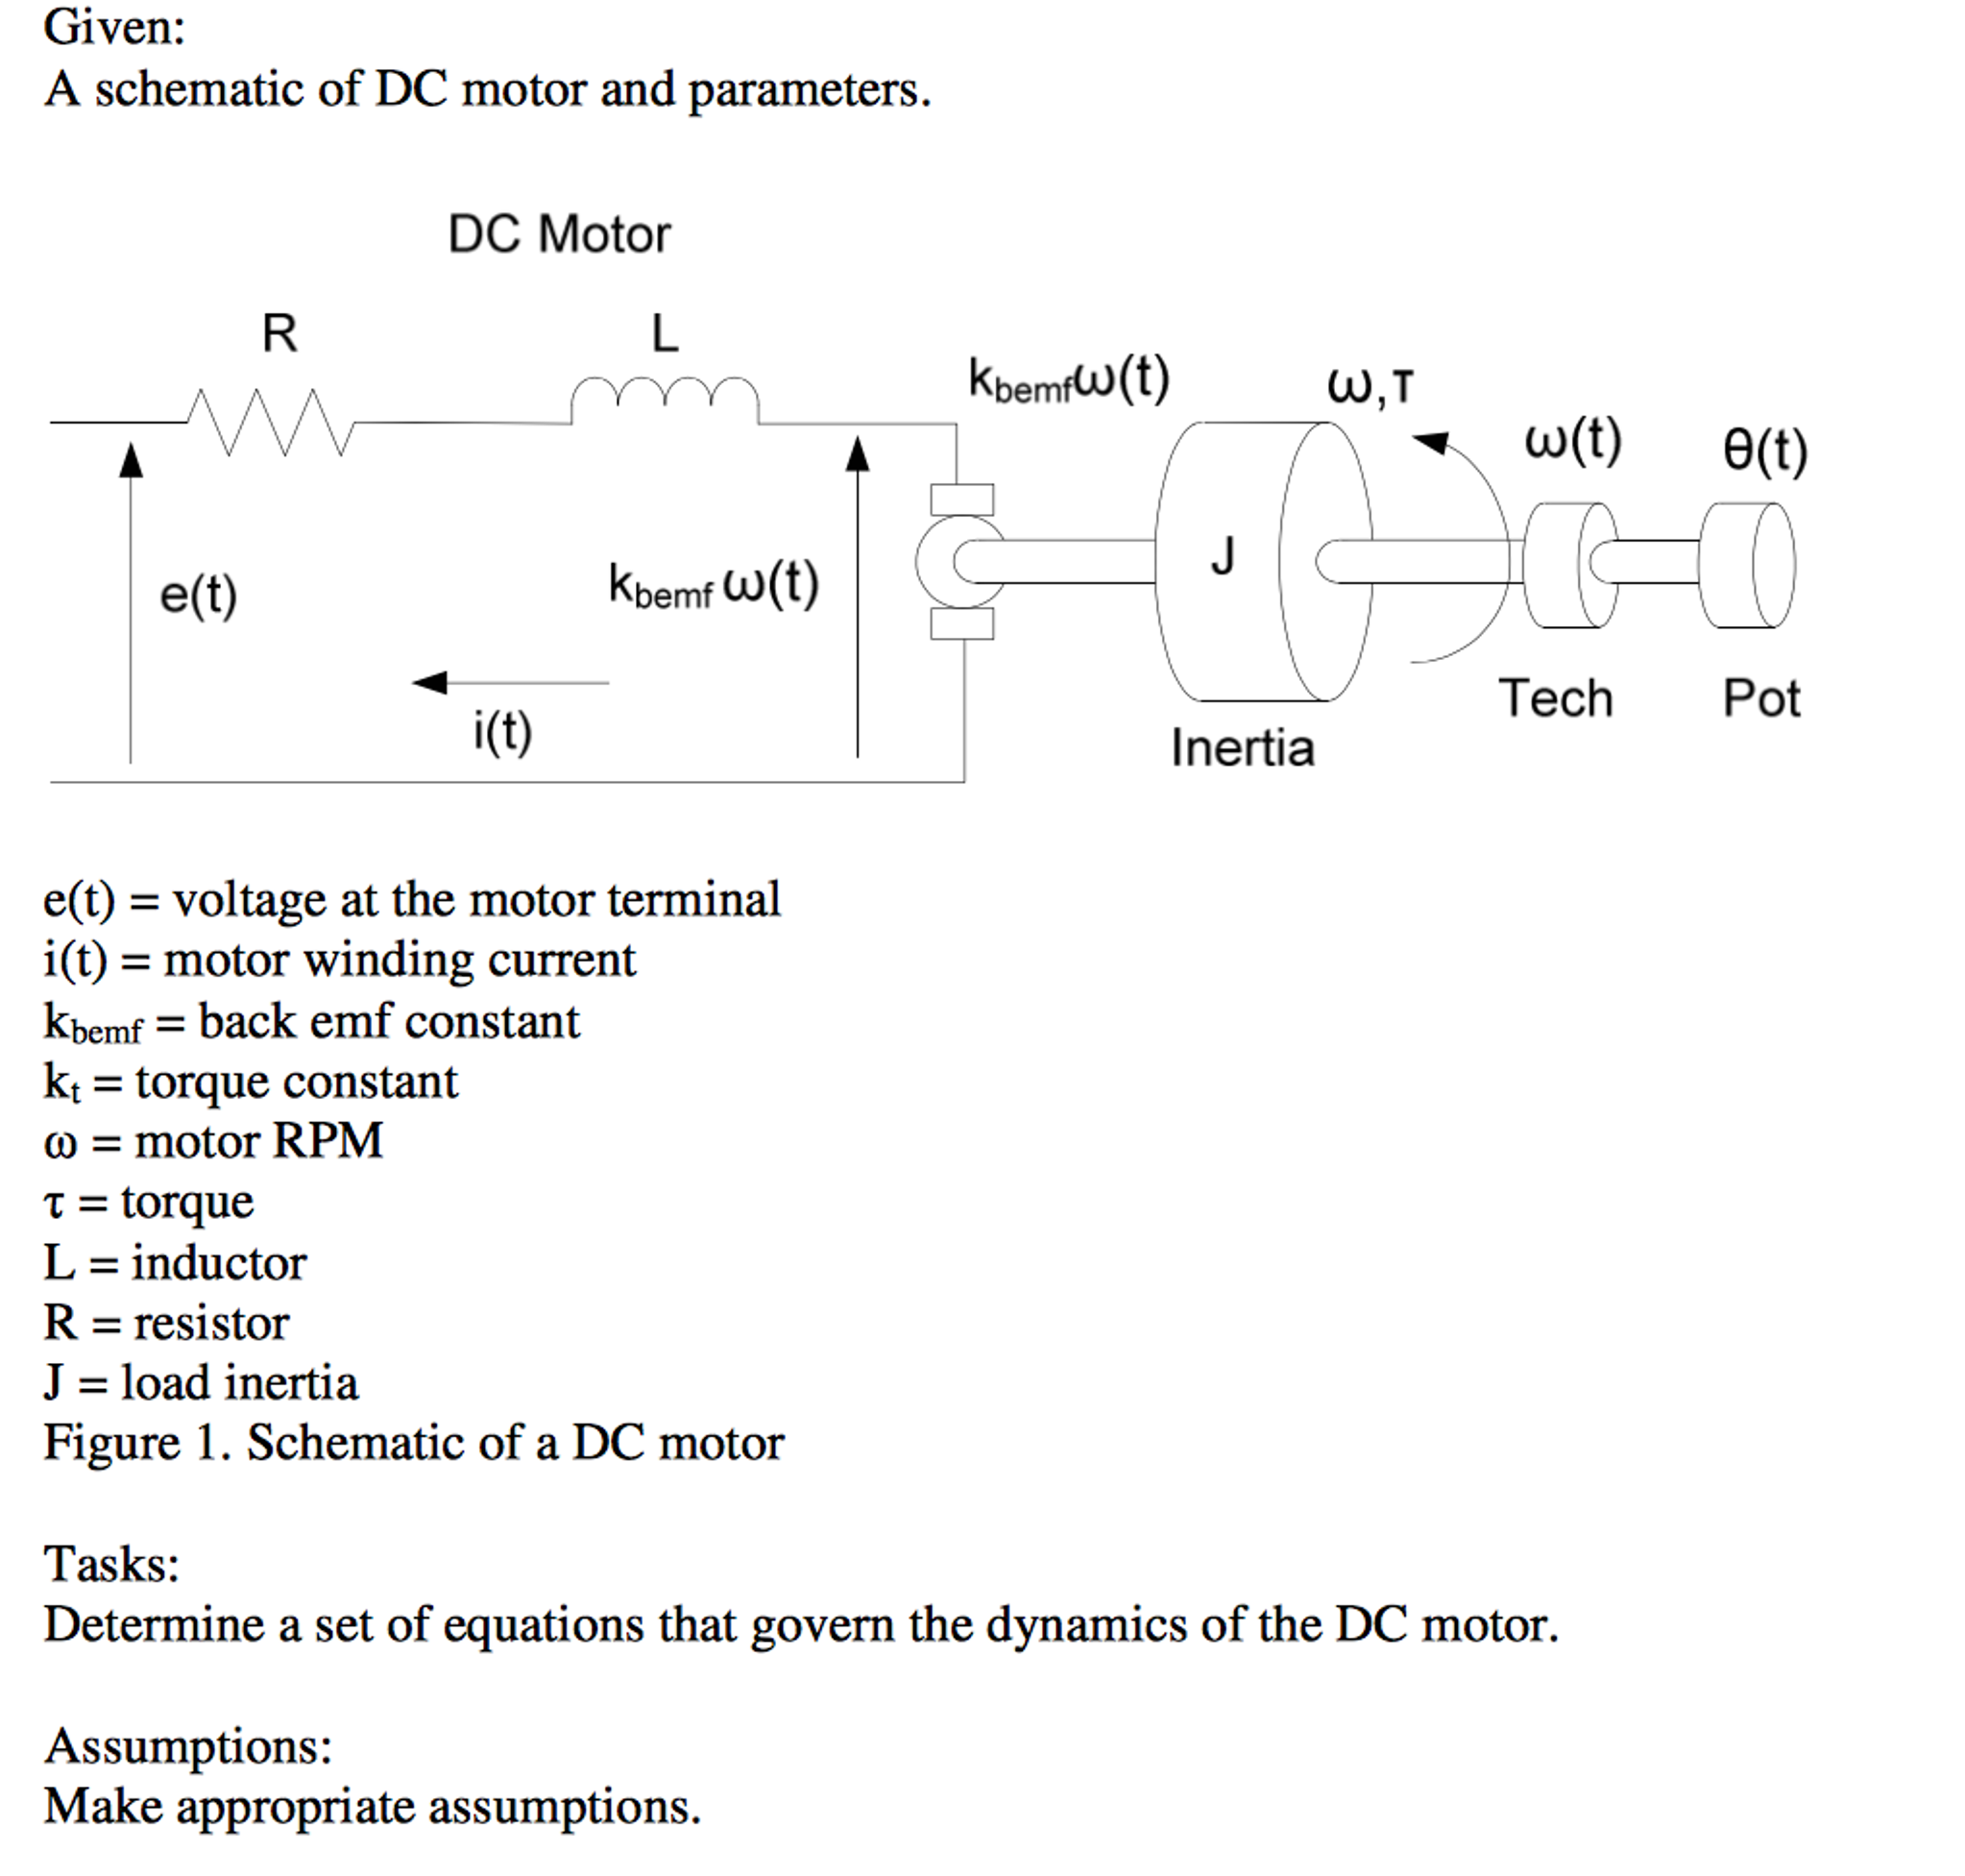 Solved: A Schematic Of DC Motor And Parameters  E(t) = Vol